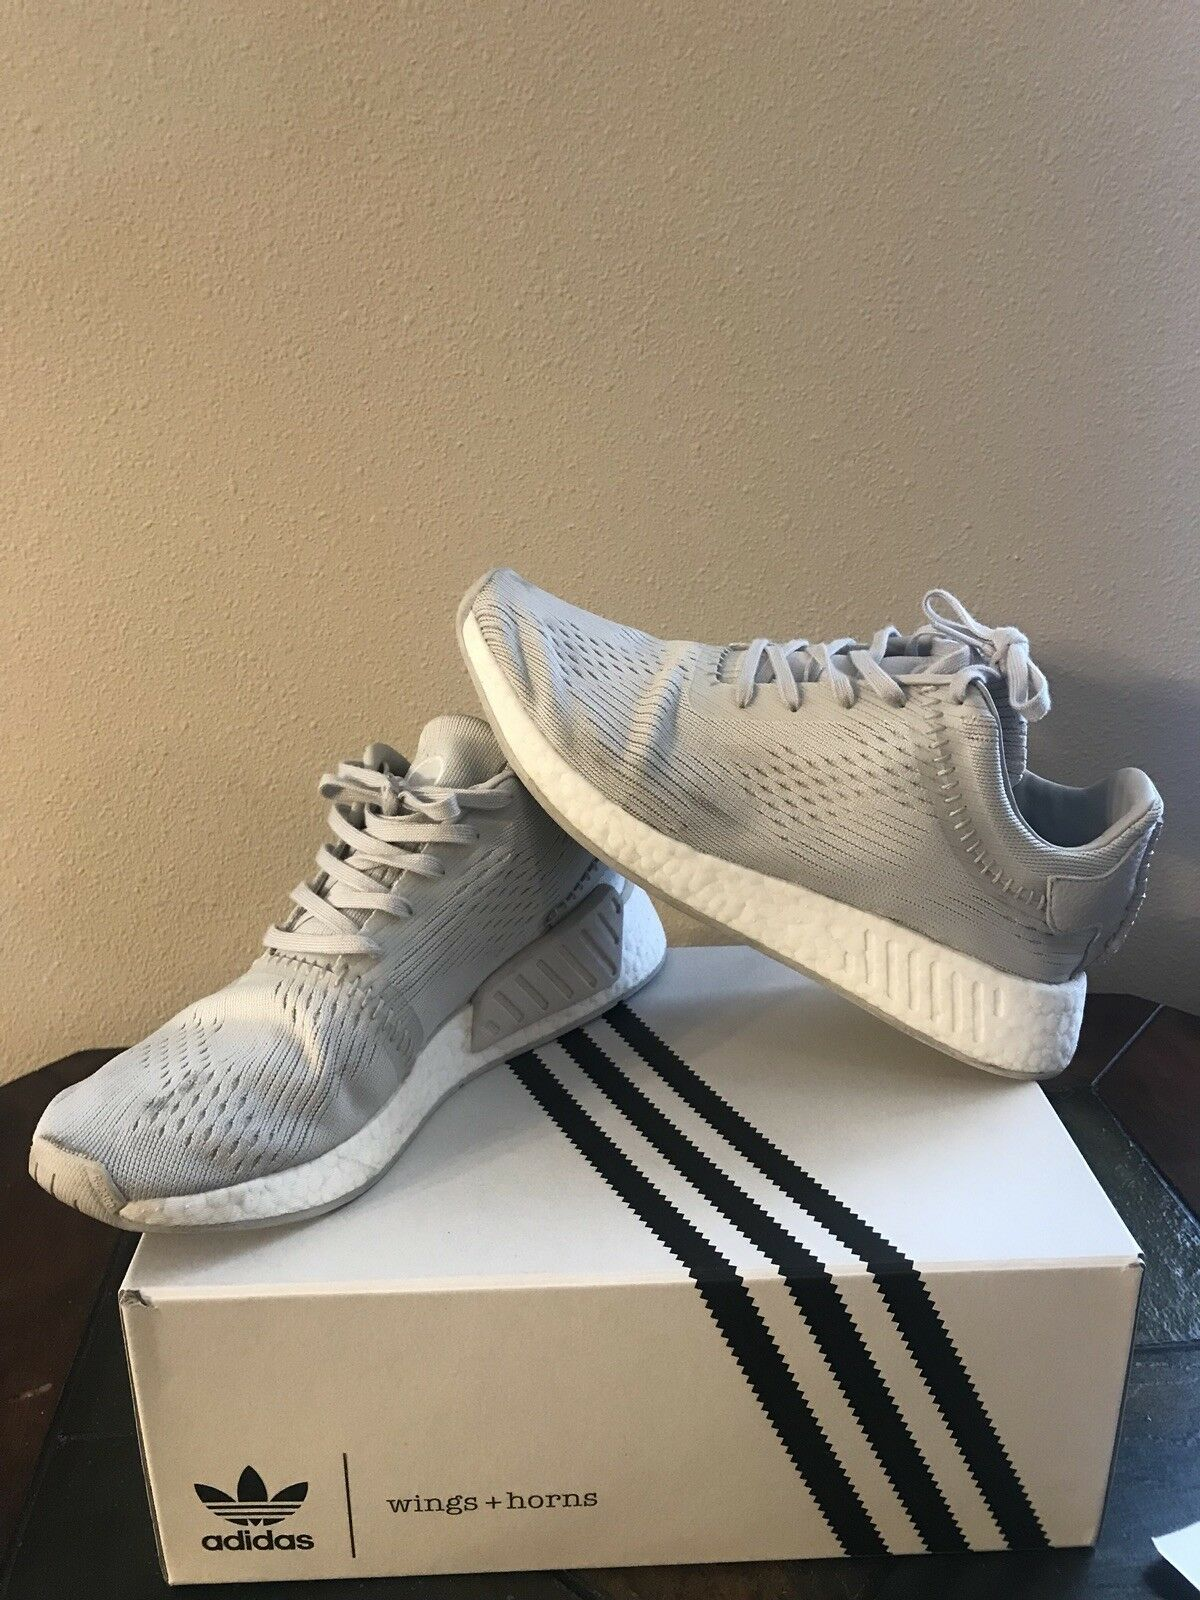 low priced ab15f f8c25 ORIGINAL ADIDAS Men s Tubular Doom Sock PK CQ0683 Size US 12,. Adidas NMD  R2 R2 R2 Wings And Horns Size 10.5 2d43b7